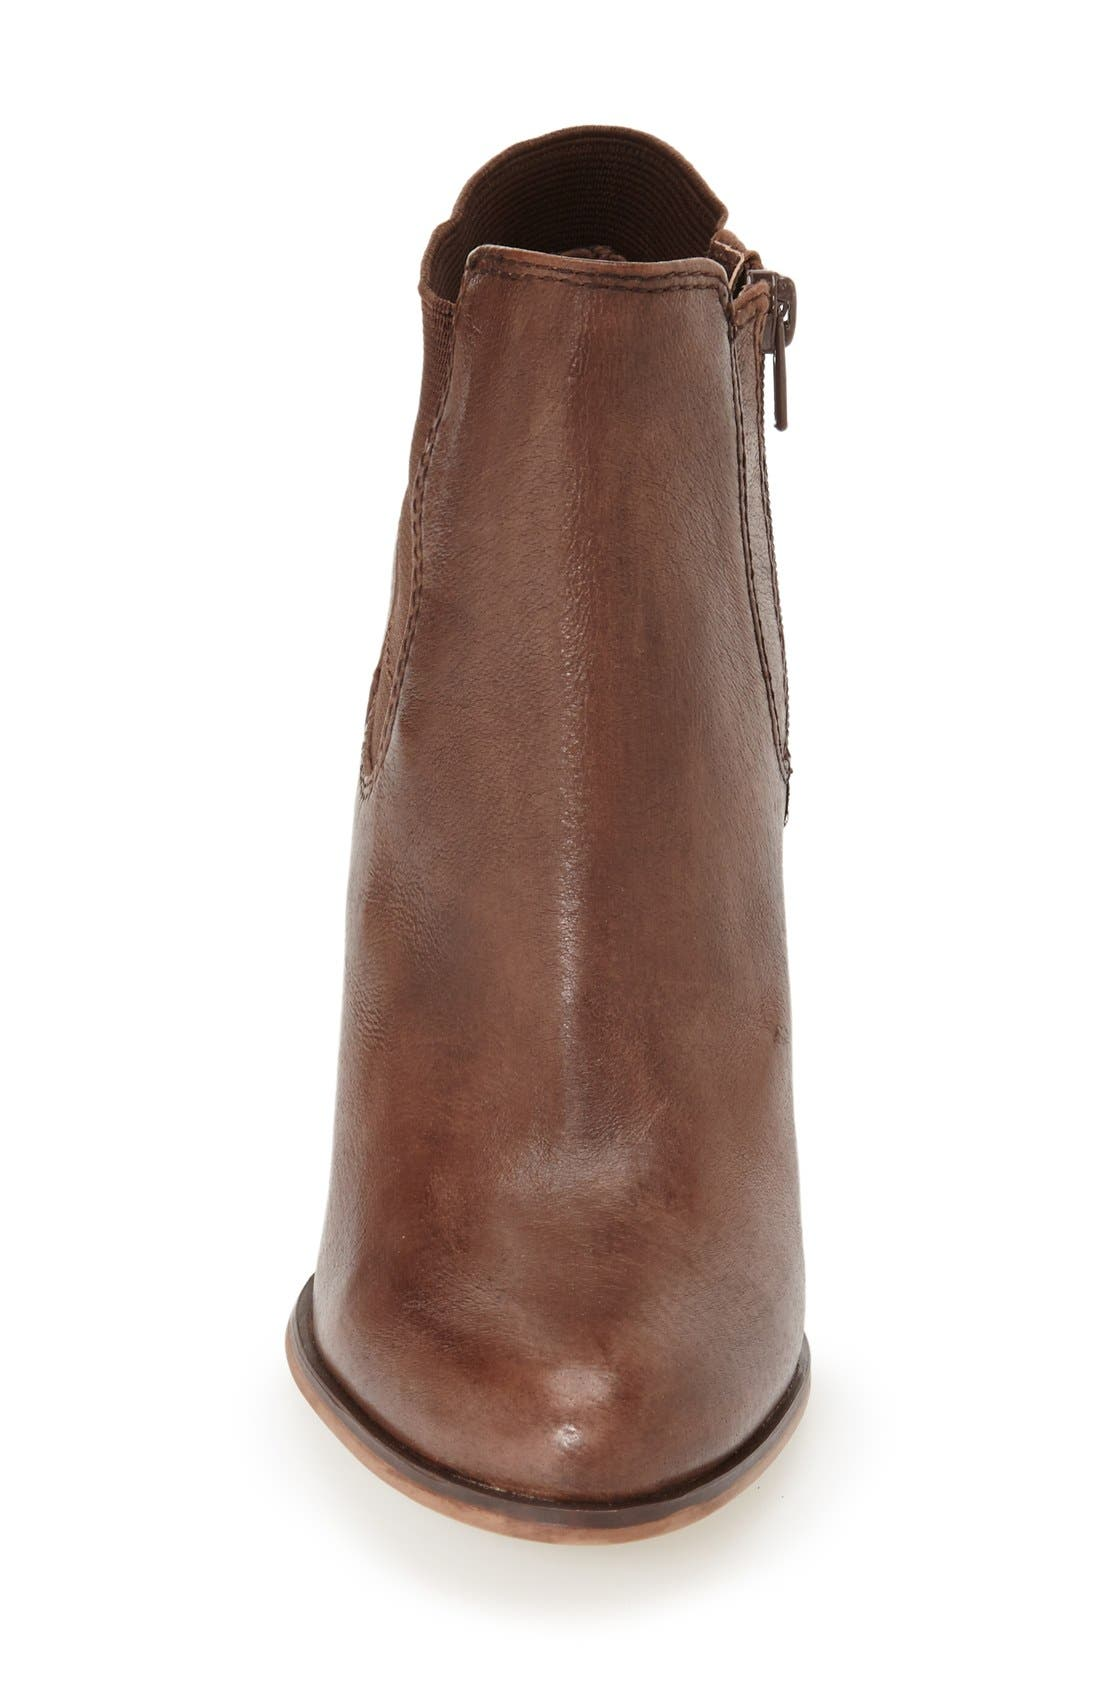 Alternate Image 3  - Steven by Steve Madden 'Roami' Ankle Bootie (Women)